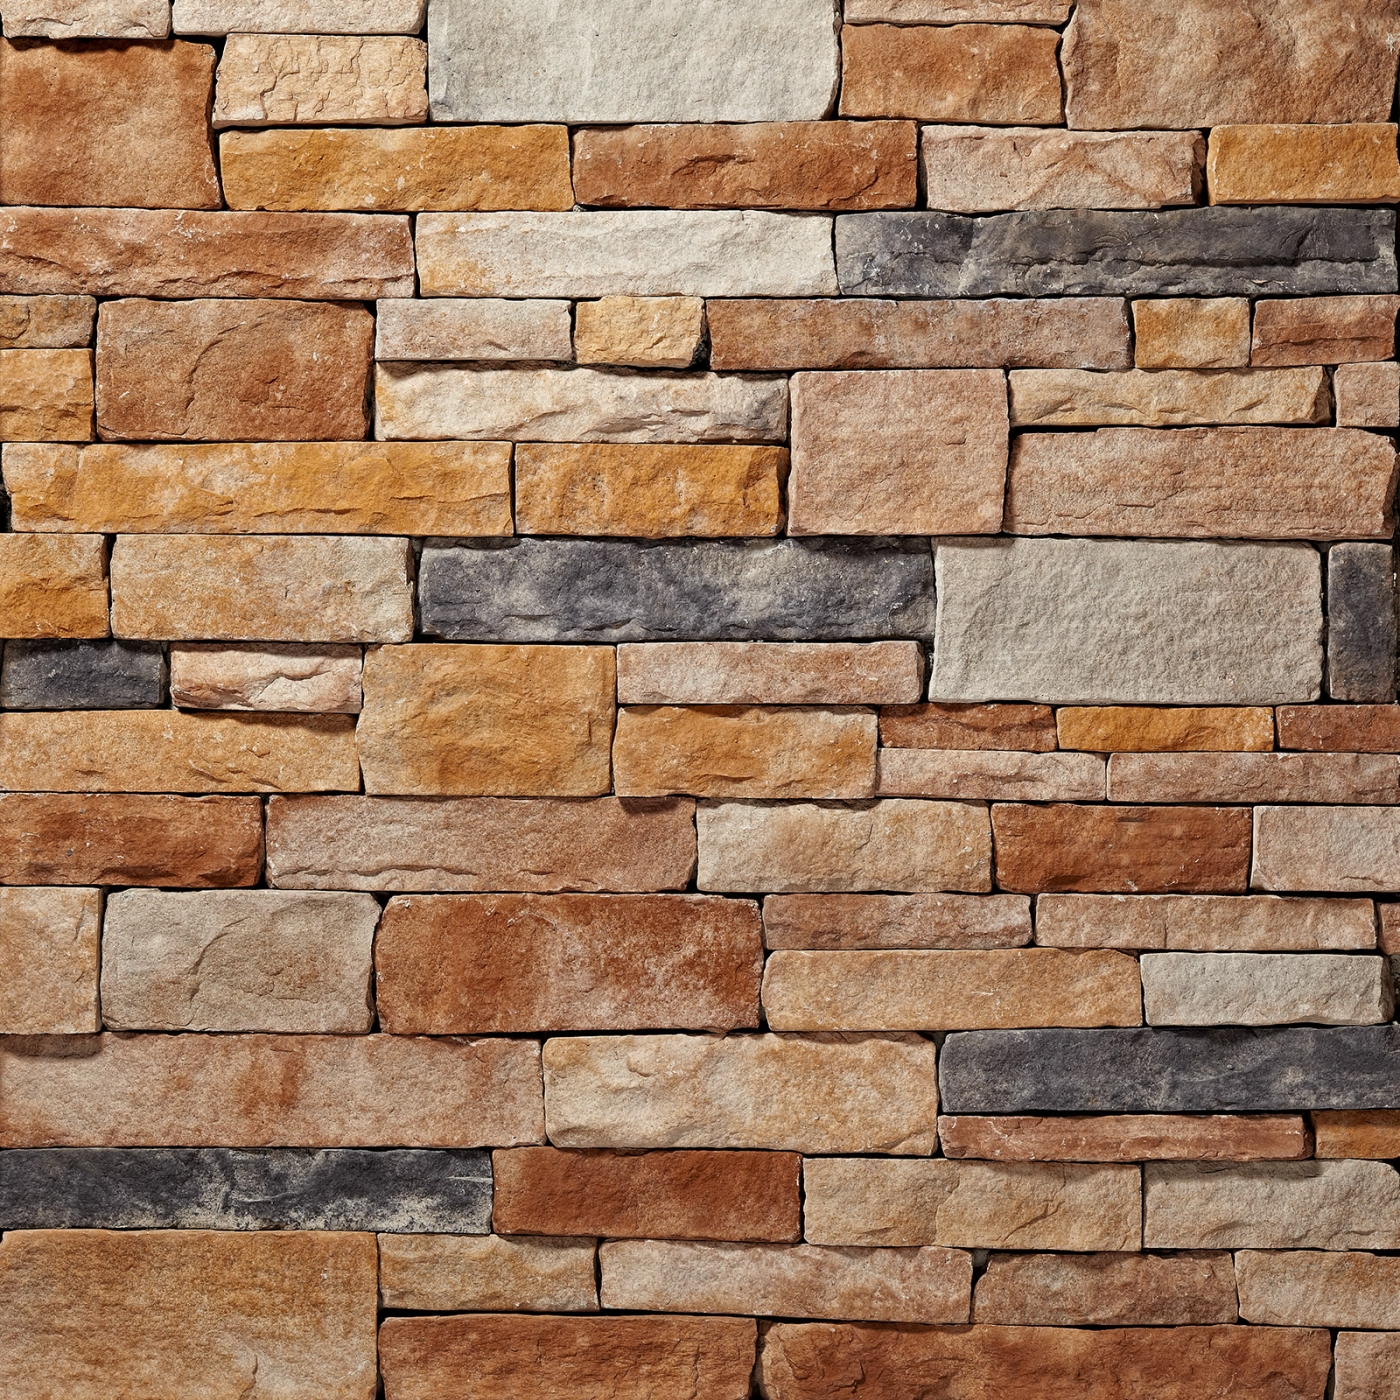 Valley Brook Ledgestone Stone Veneer from Environmental StoneWorks